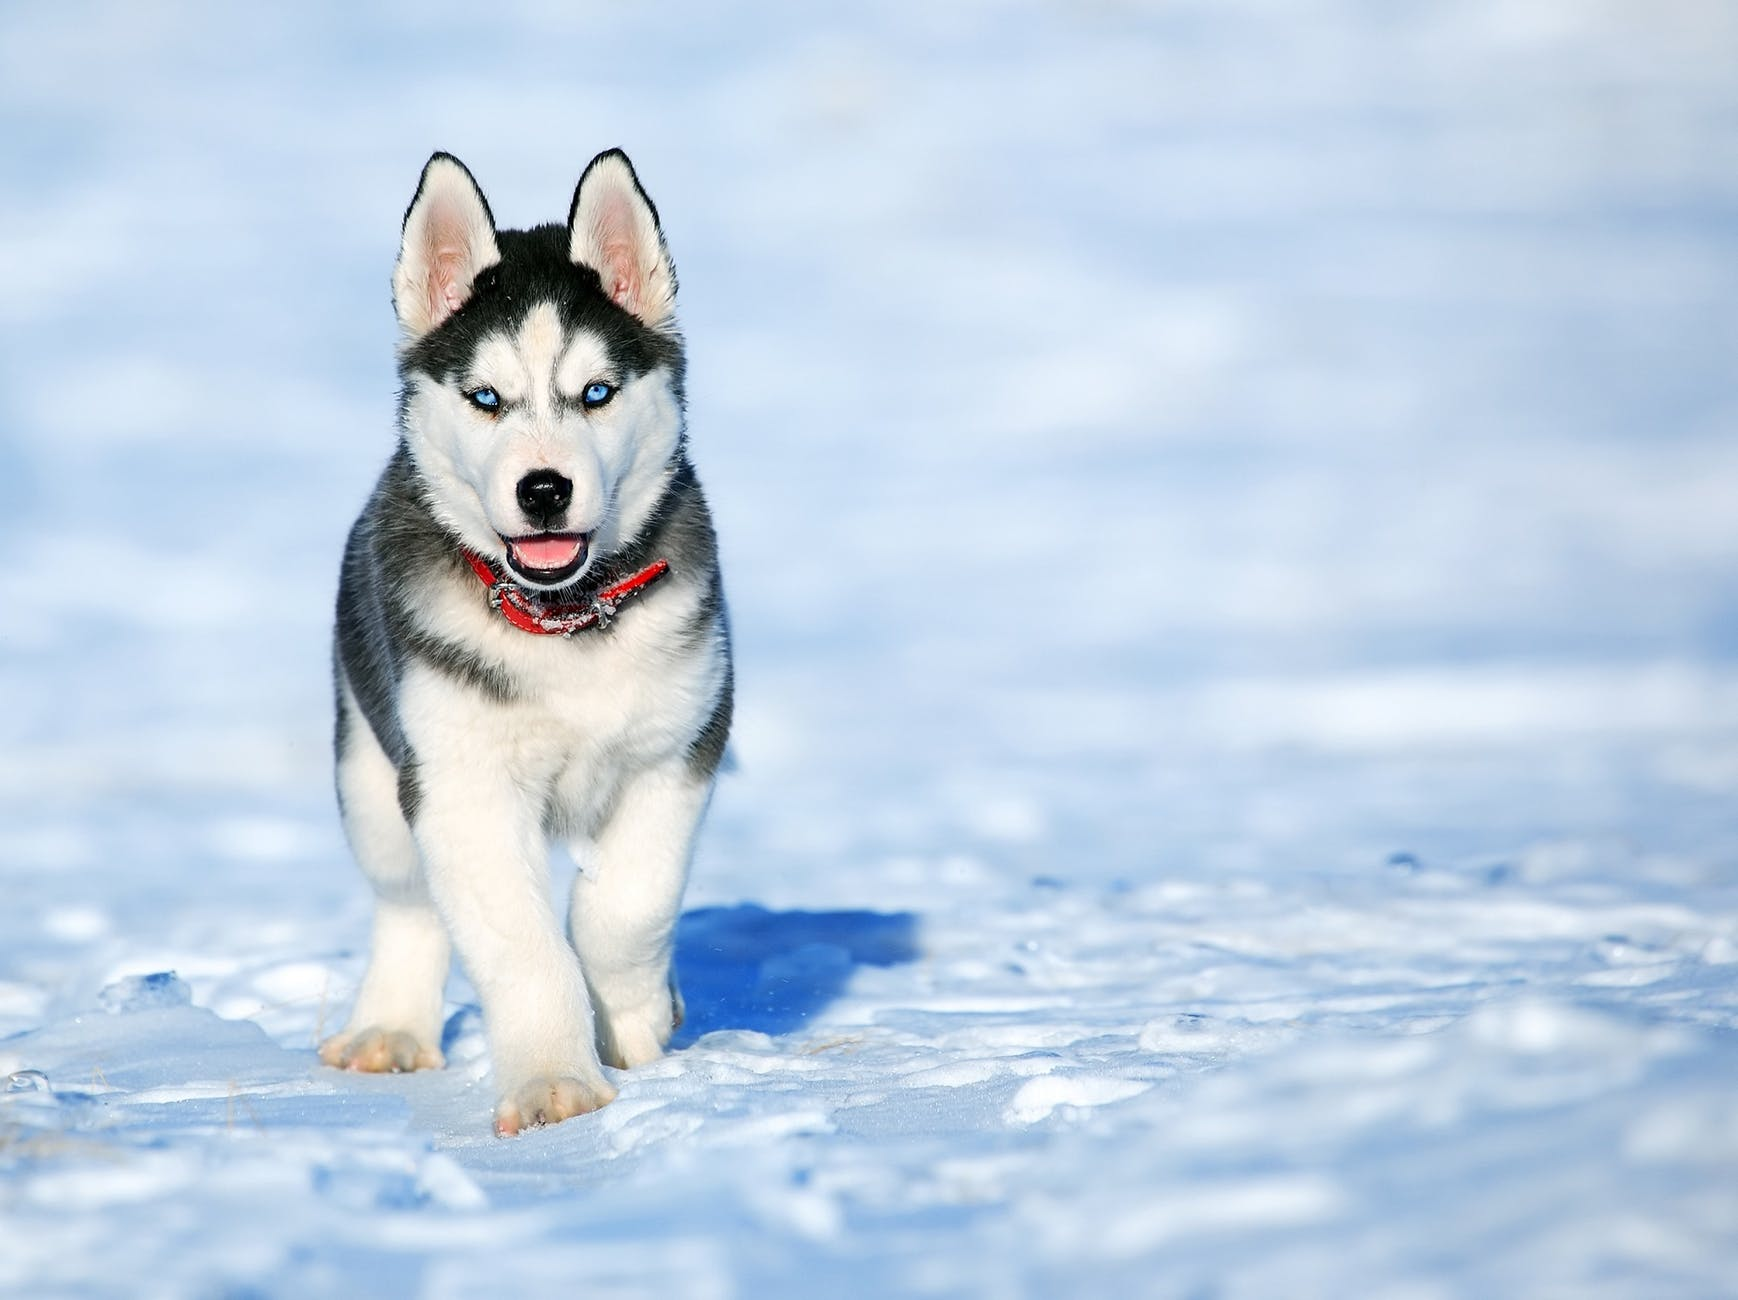 An snow field with standing Siberian Husky puppy